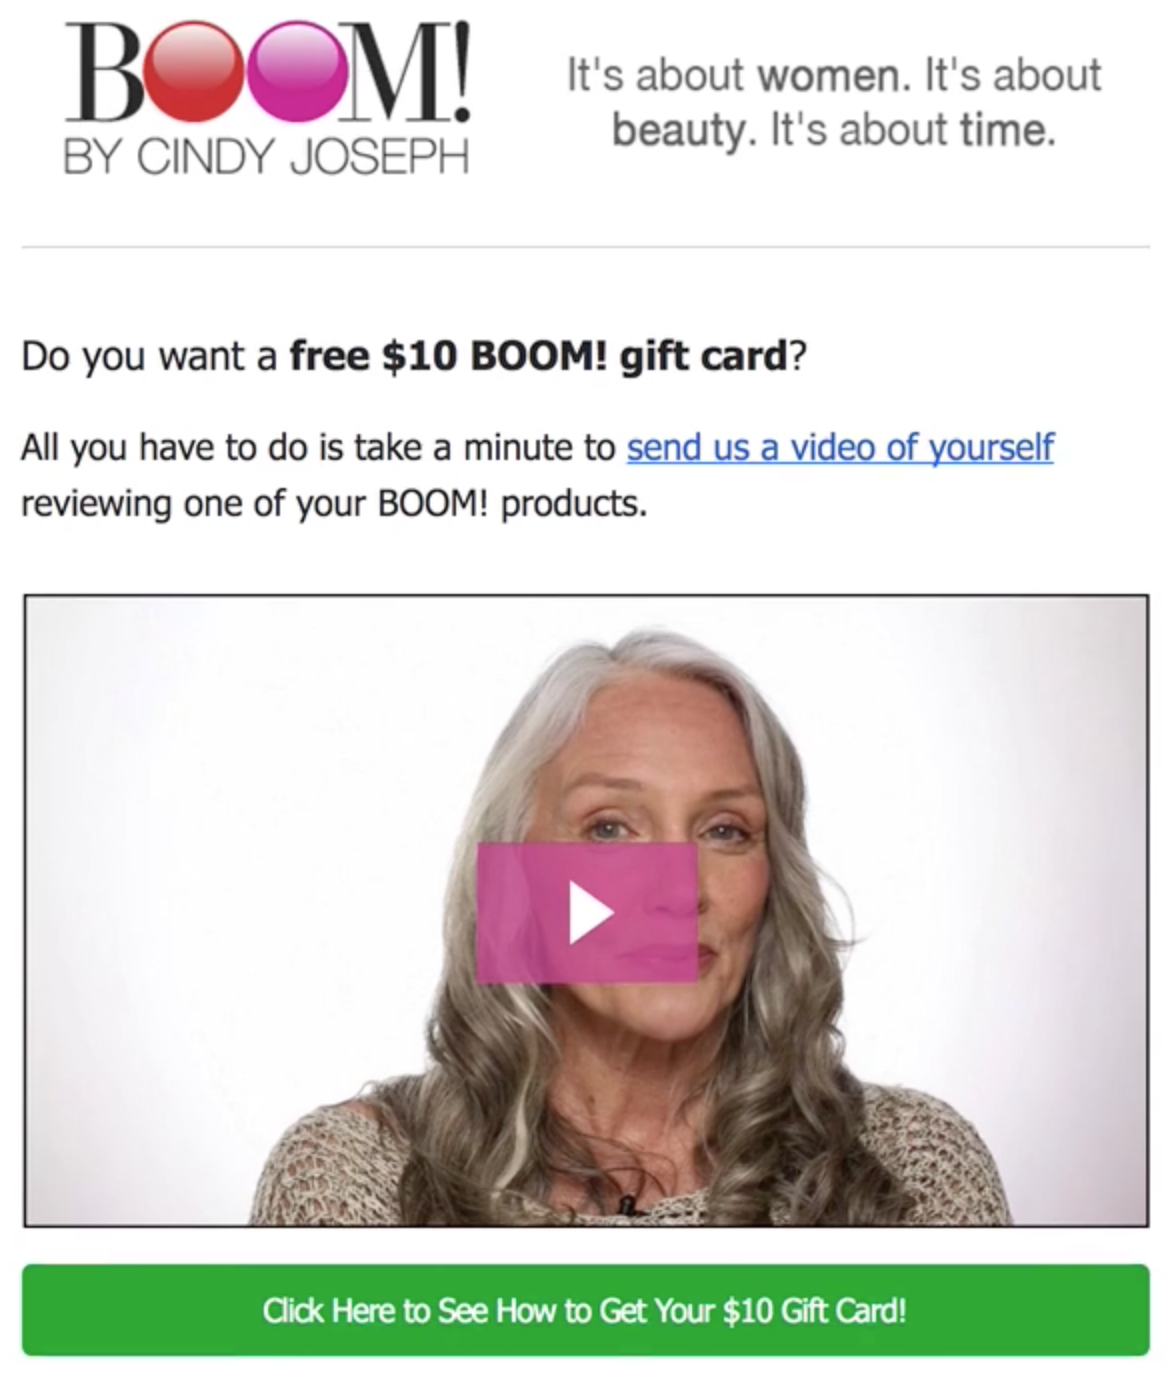 Screenshot showing a video review on BOOM! by Cindy Joseph